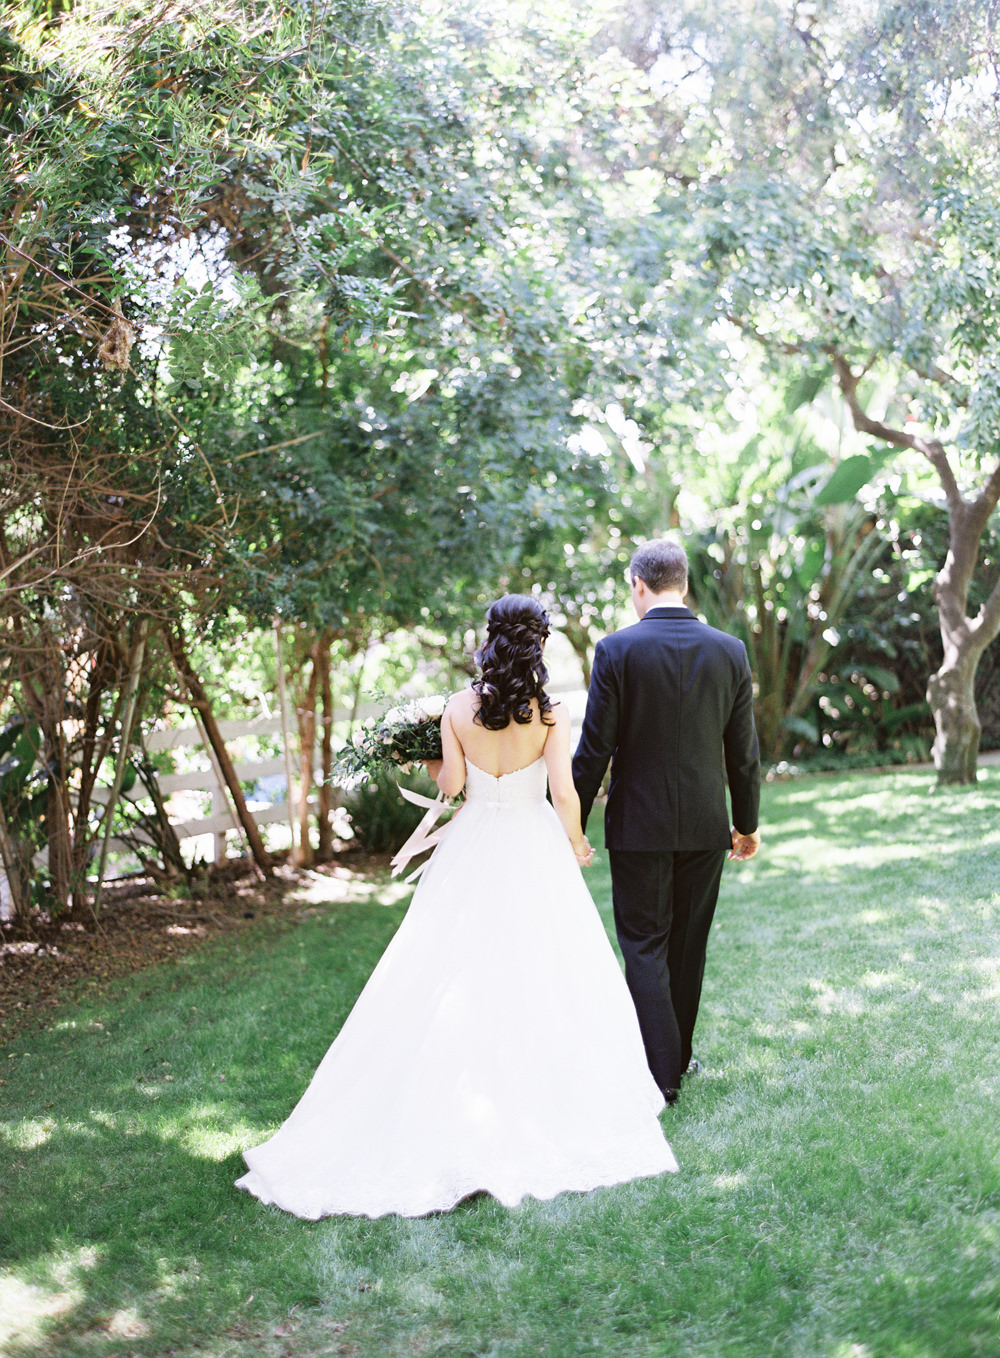 RomanticGardenWedding_WhiskersandWillow_043.jpg